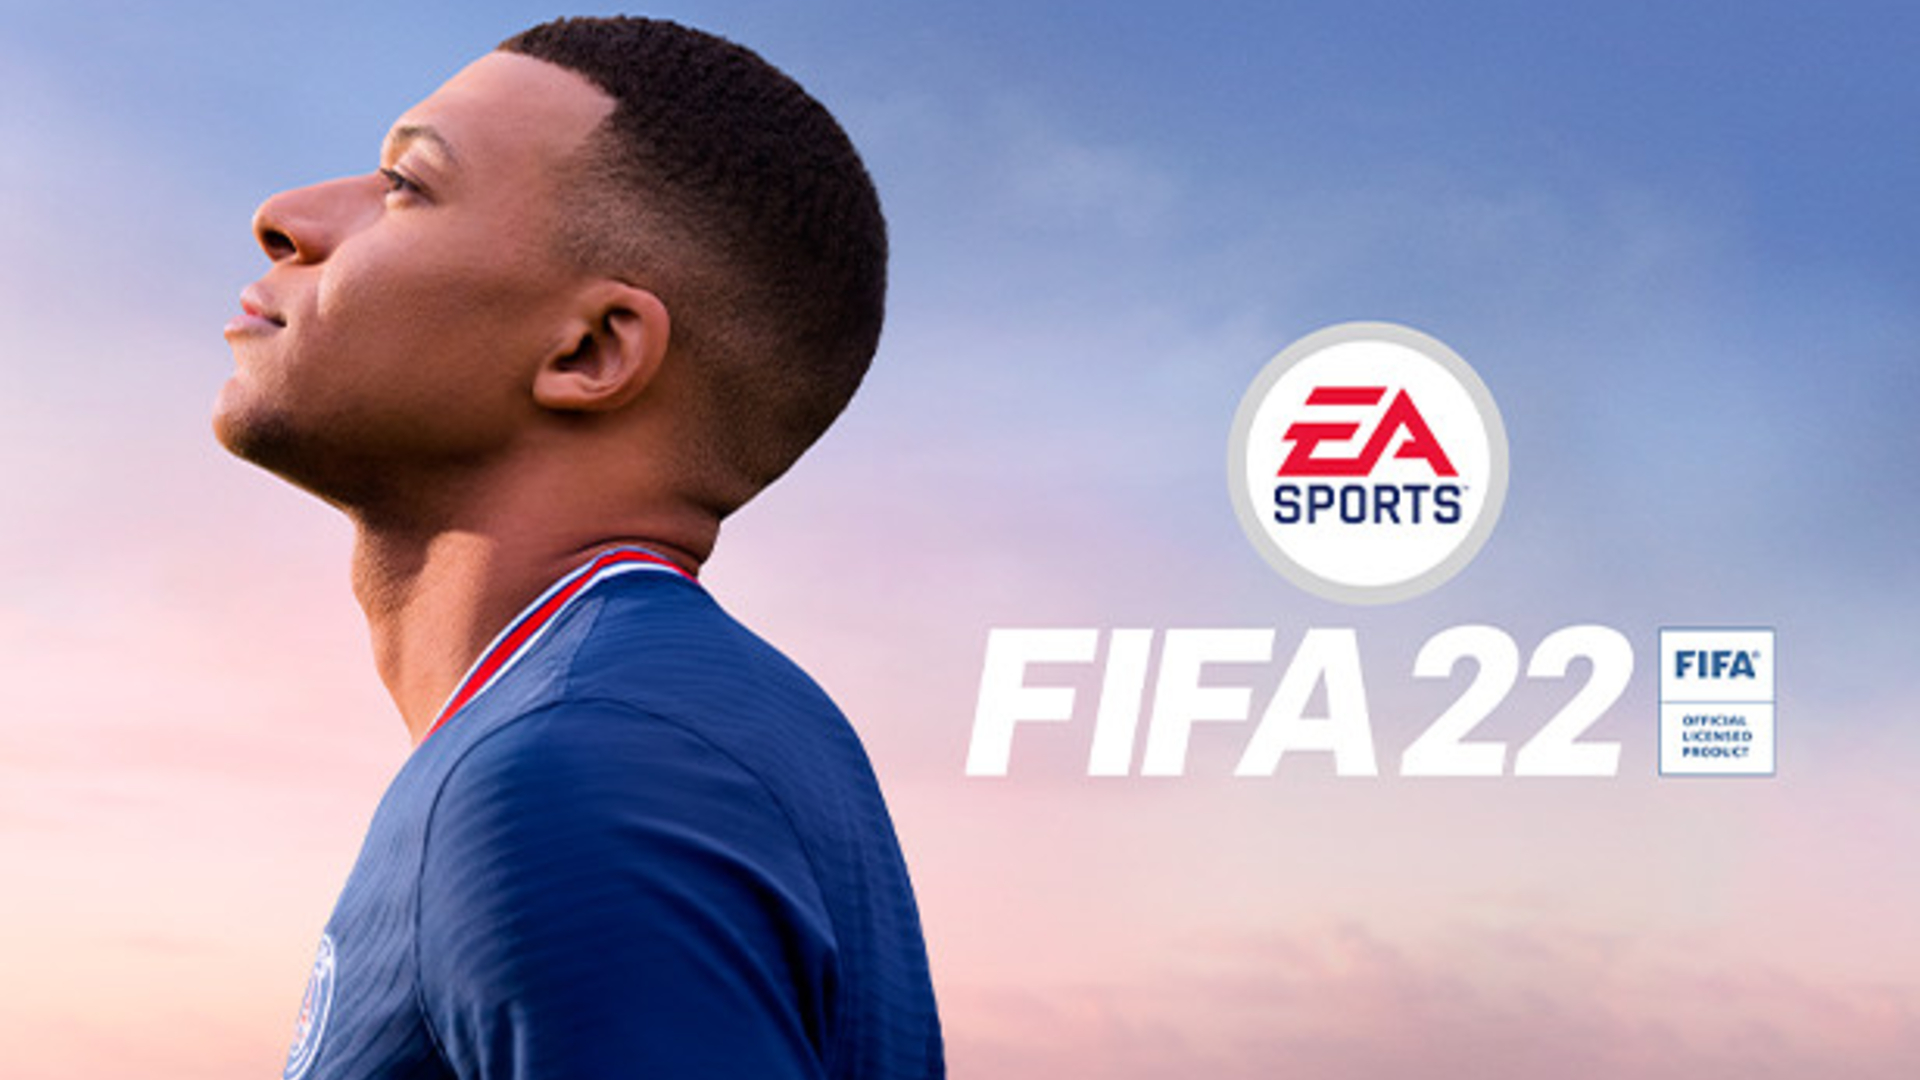 EA FIFA rebrand? Explaining potential changes to soccer video game franchise